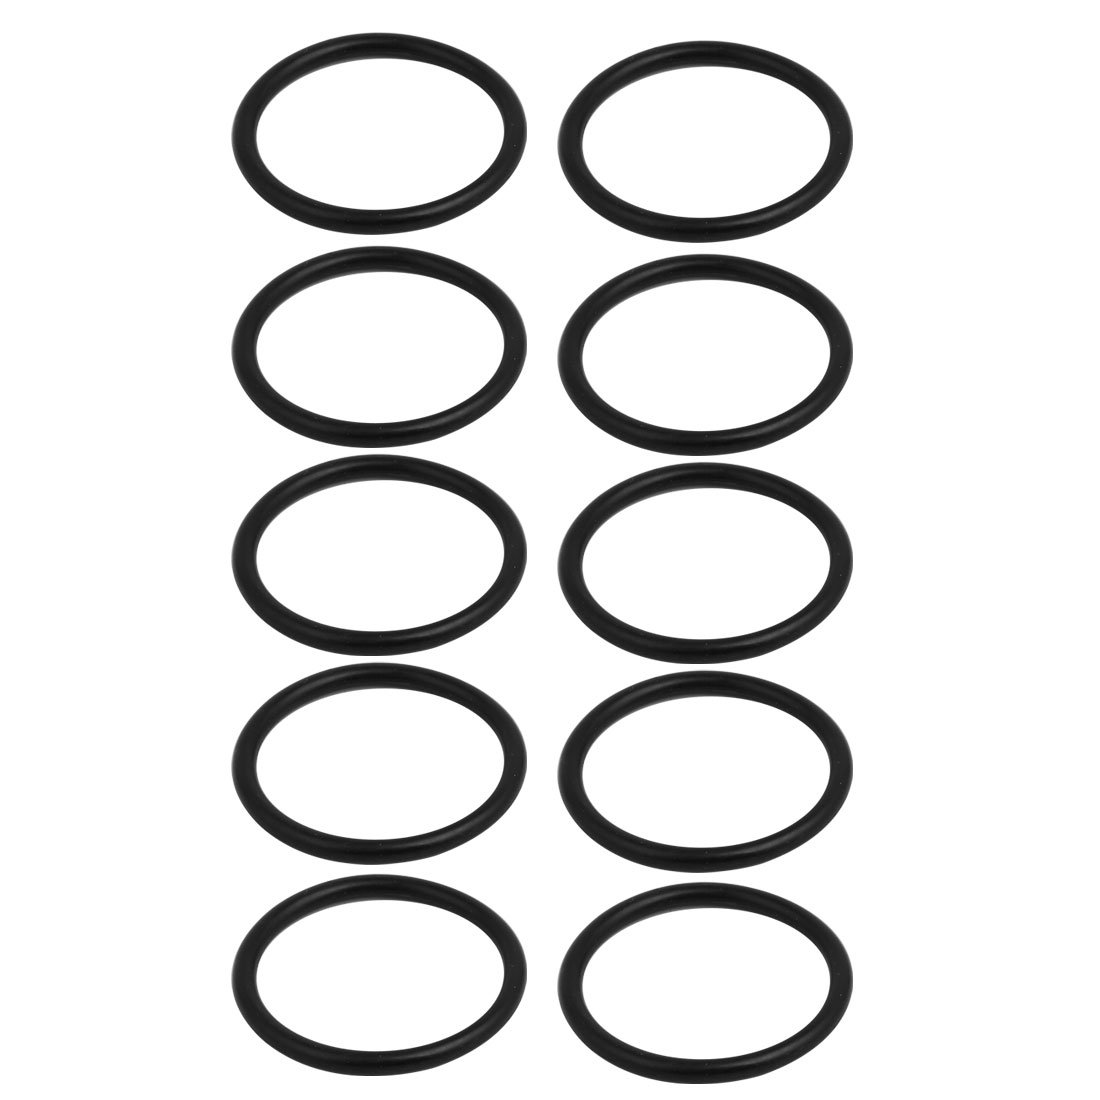 sourcing map 10pcs Junta tó rica de caucho flexible Anillo negro de 60mmx50mm Industrial